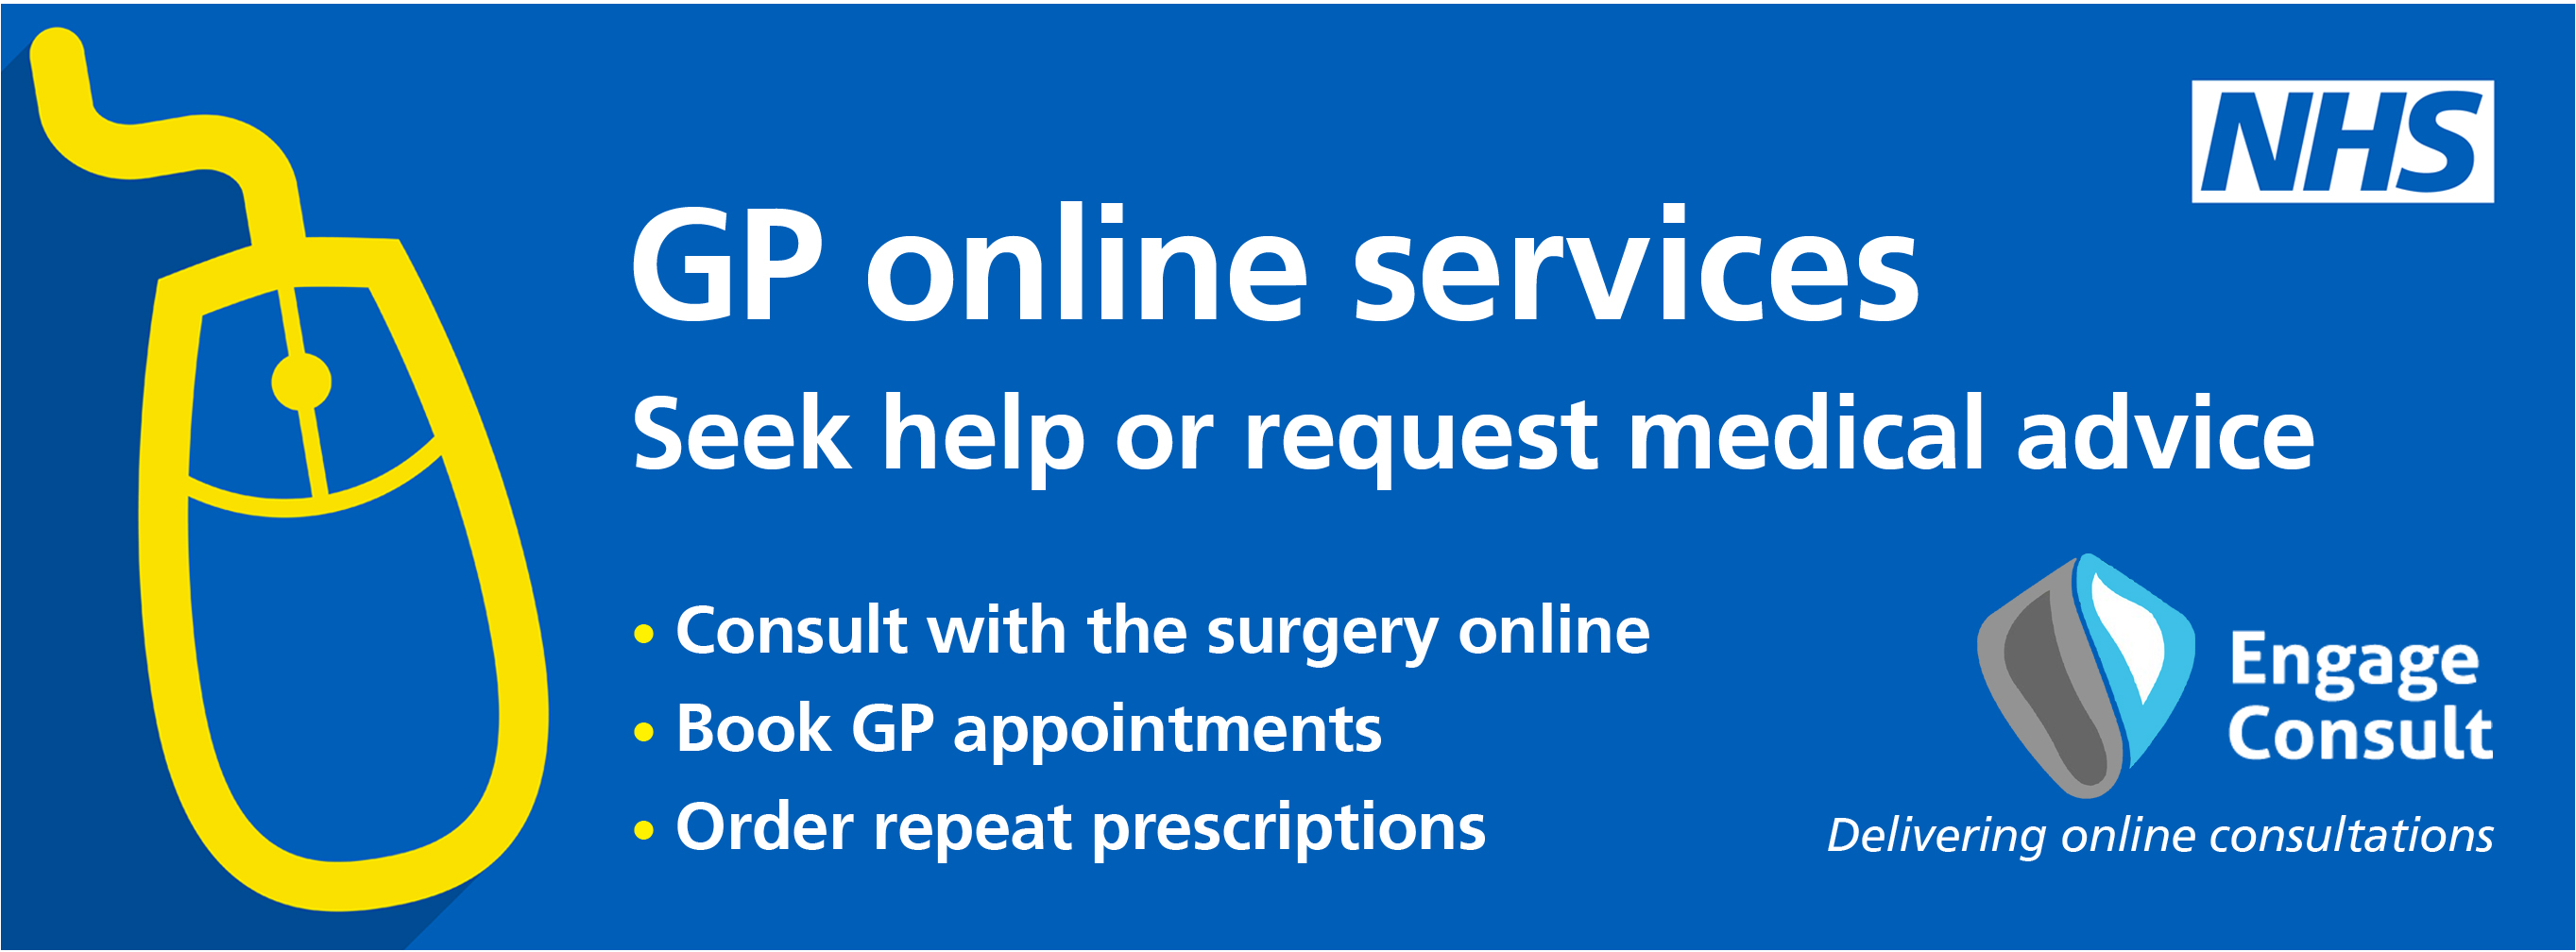 GP online services.  Seek help or request medical advice.  Consult with the surgery online.  Book GP appointments.  Order repeay prescriptions.  Engage Consult.  Delivering online consultations